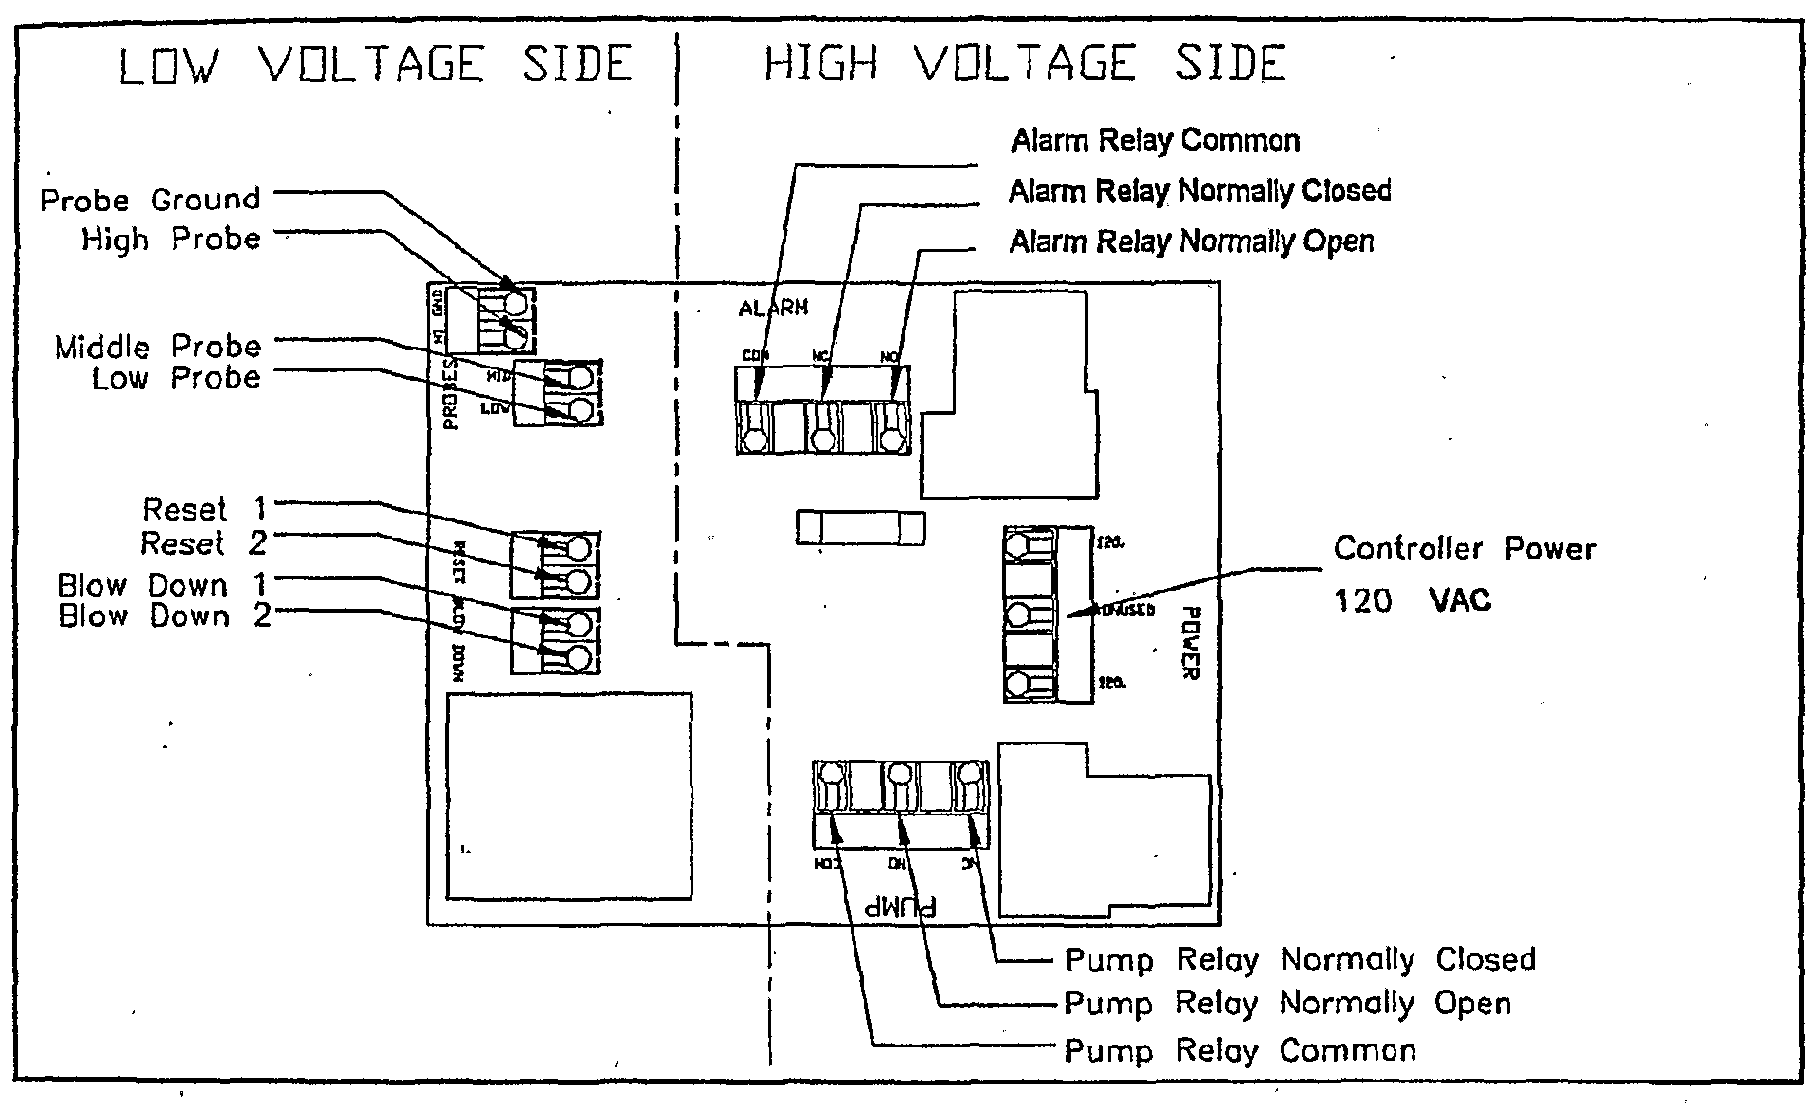 Patent WOA Automatic Boiler Level Controller Google - Relay normally open